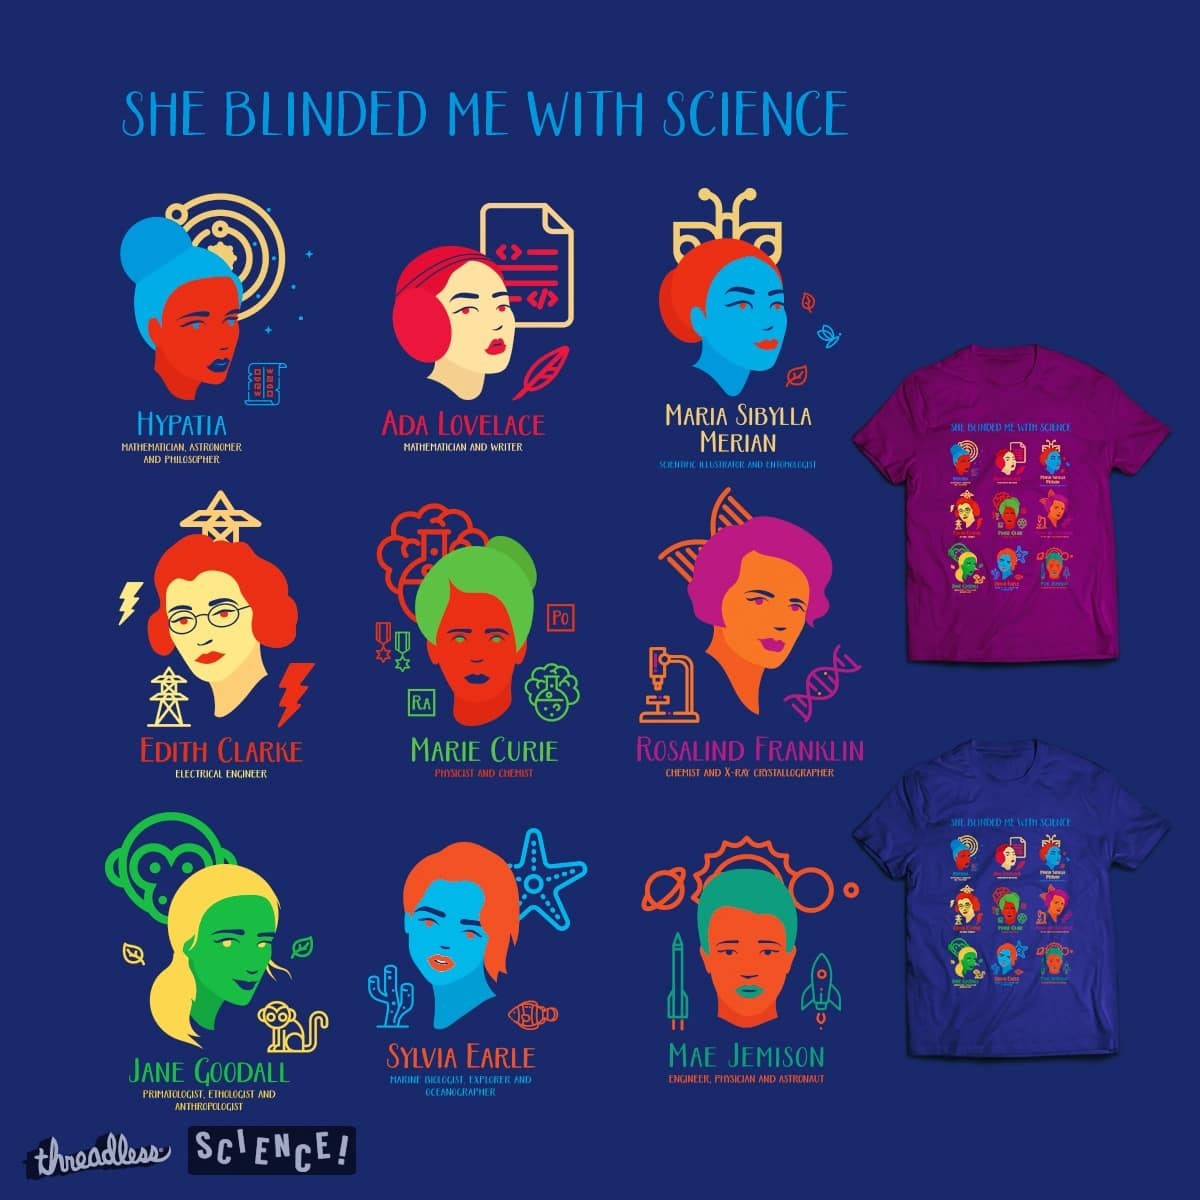 She Blinded Me with Science by janamis on Threadless